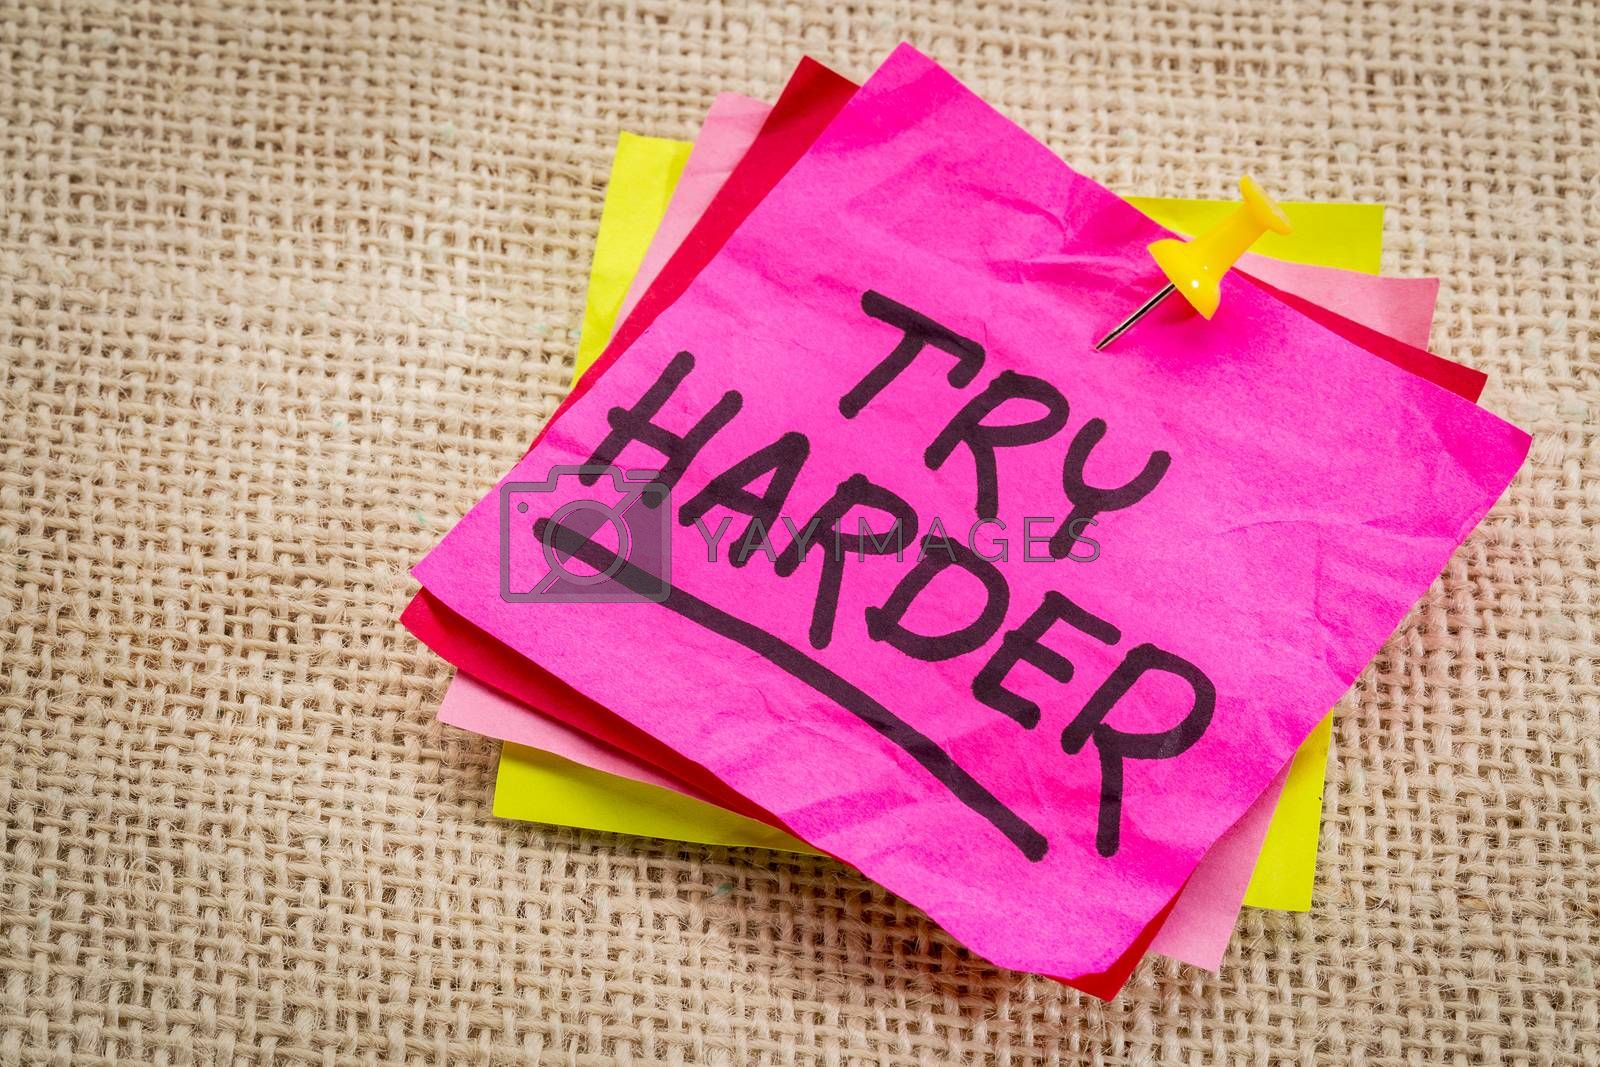 try harder - motivation words on a  purple sticky note against burlap canvas